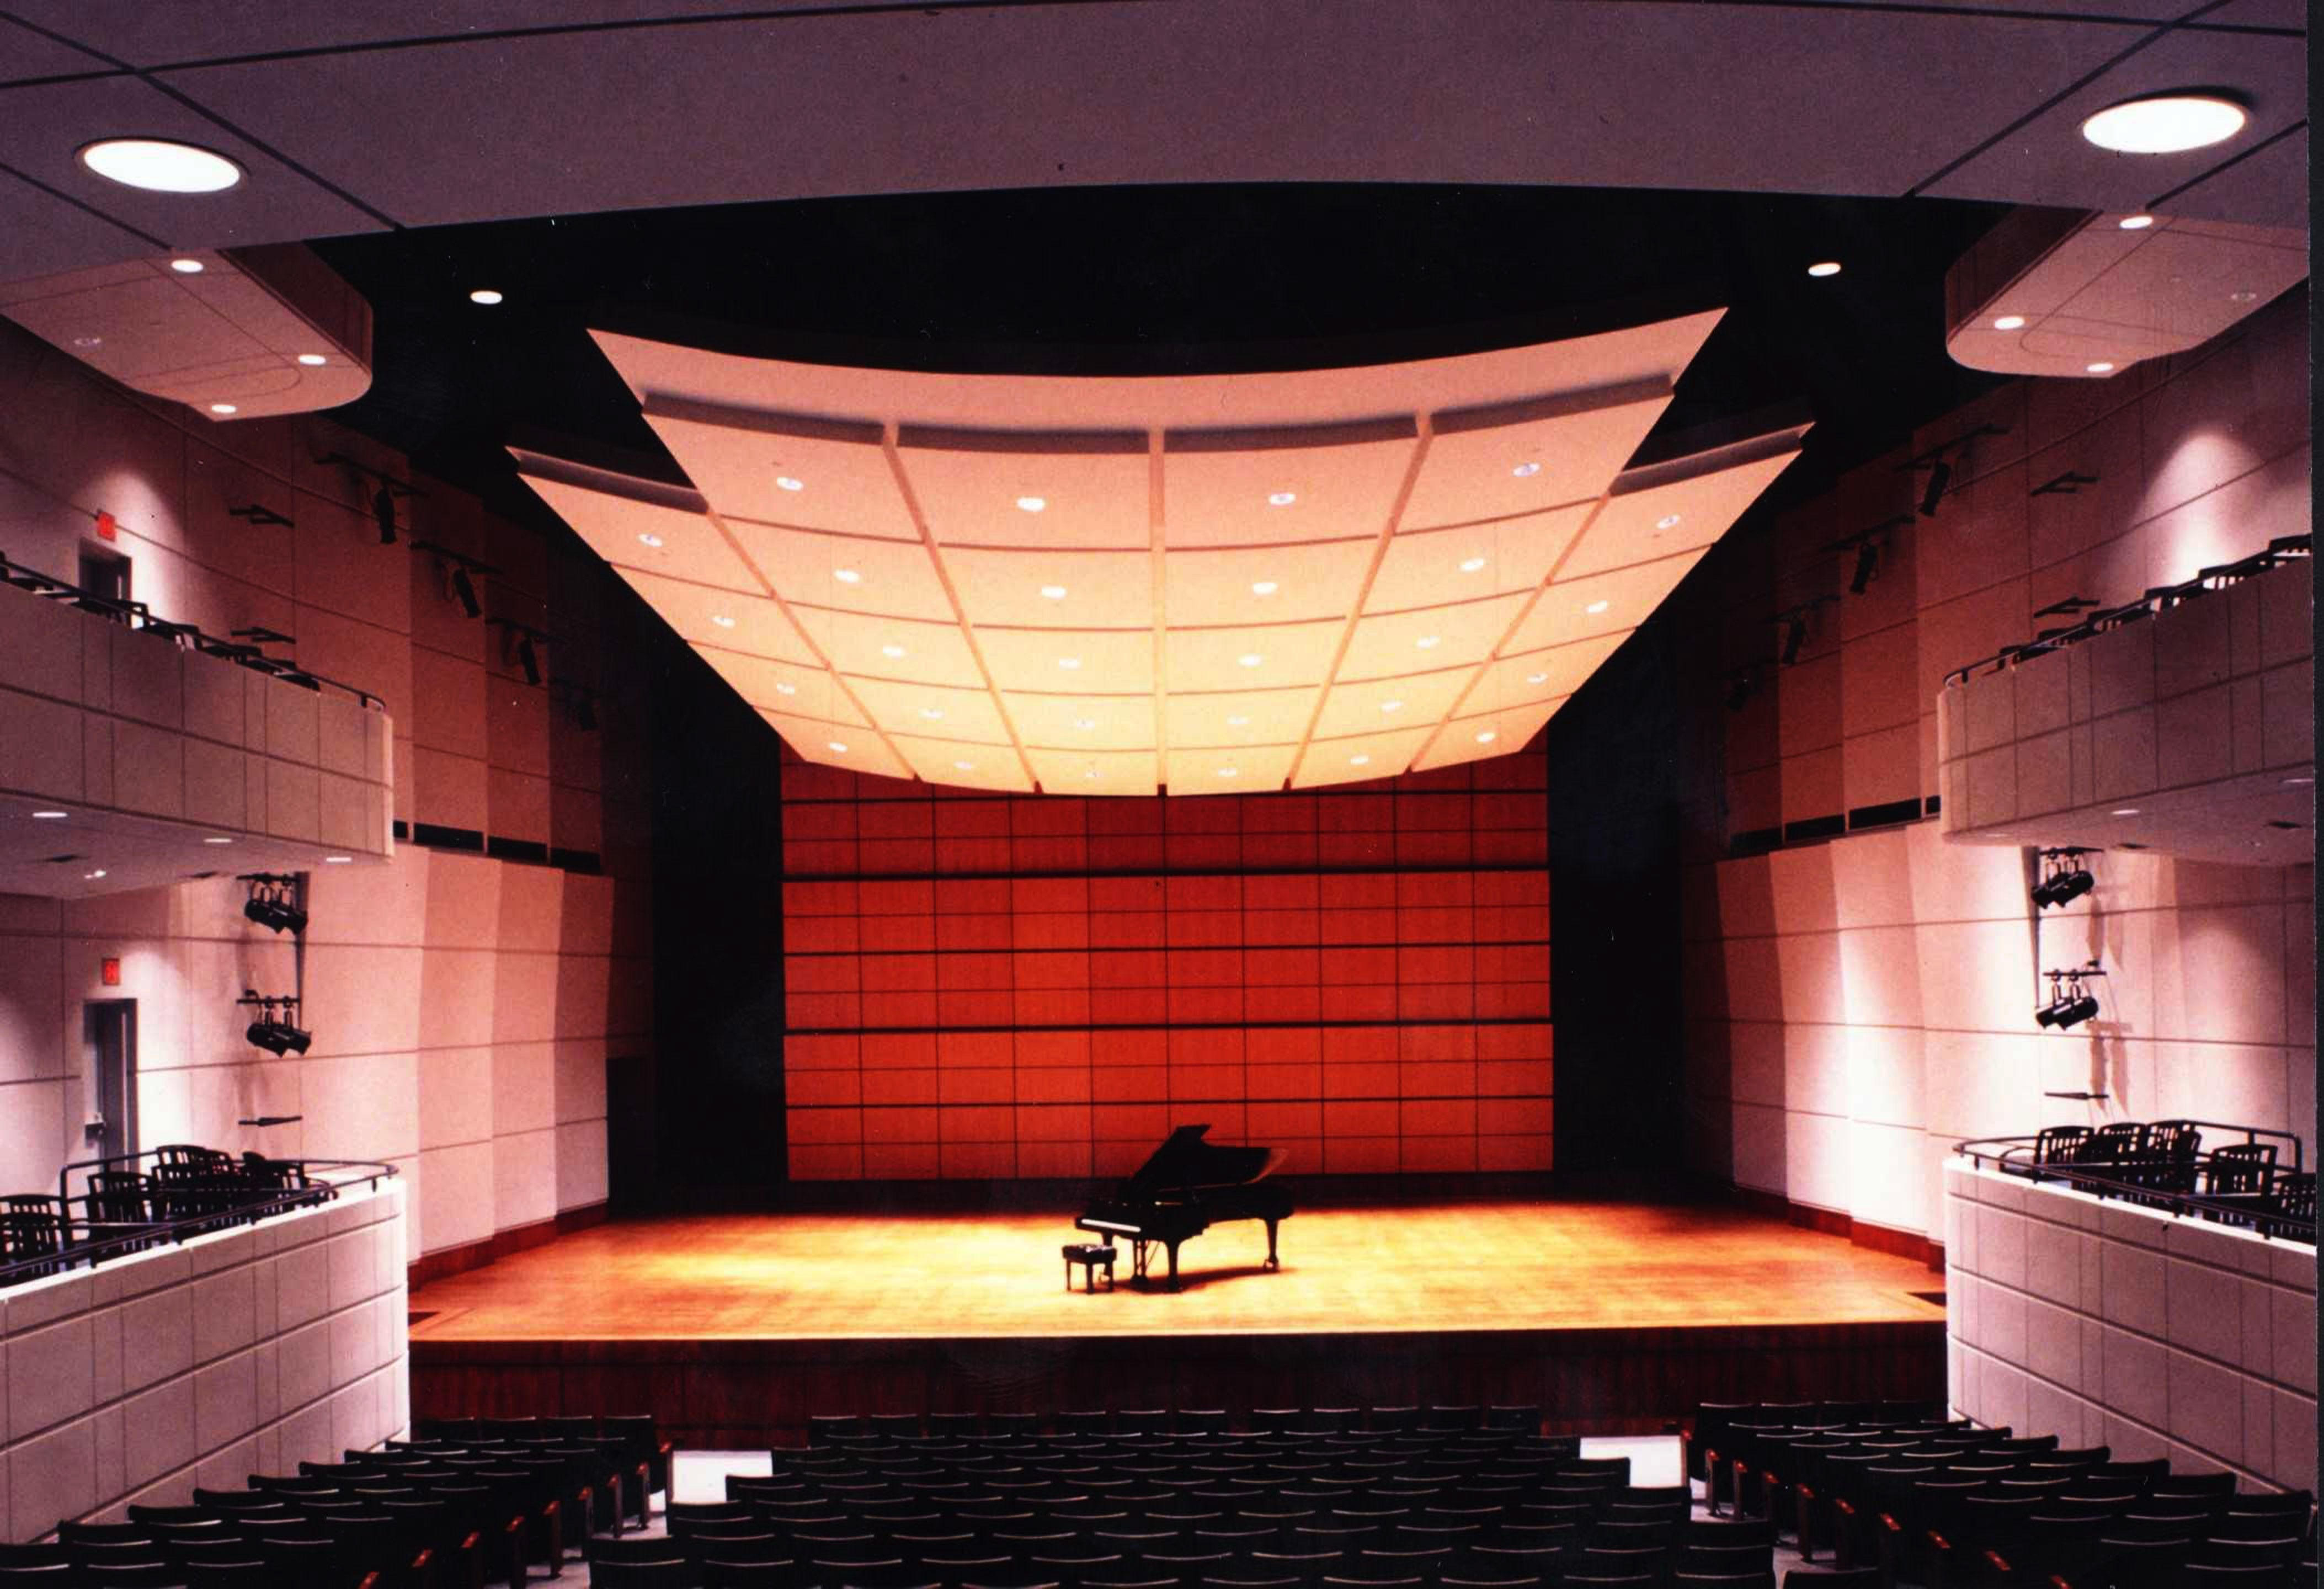 Concert hall mesquite arts center 1527 n galloway ave